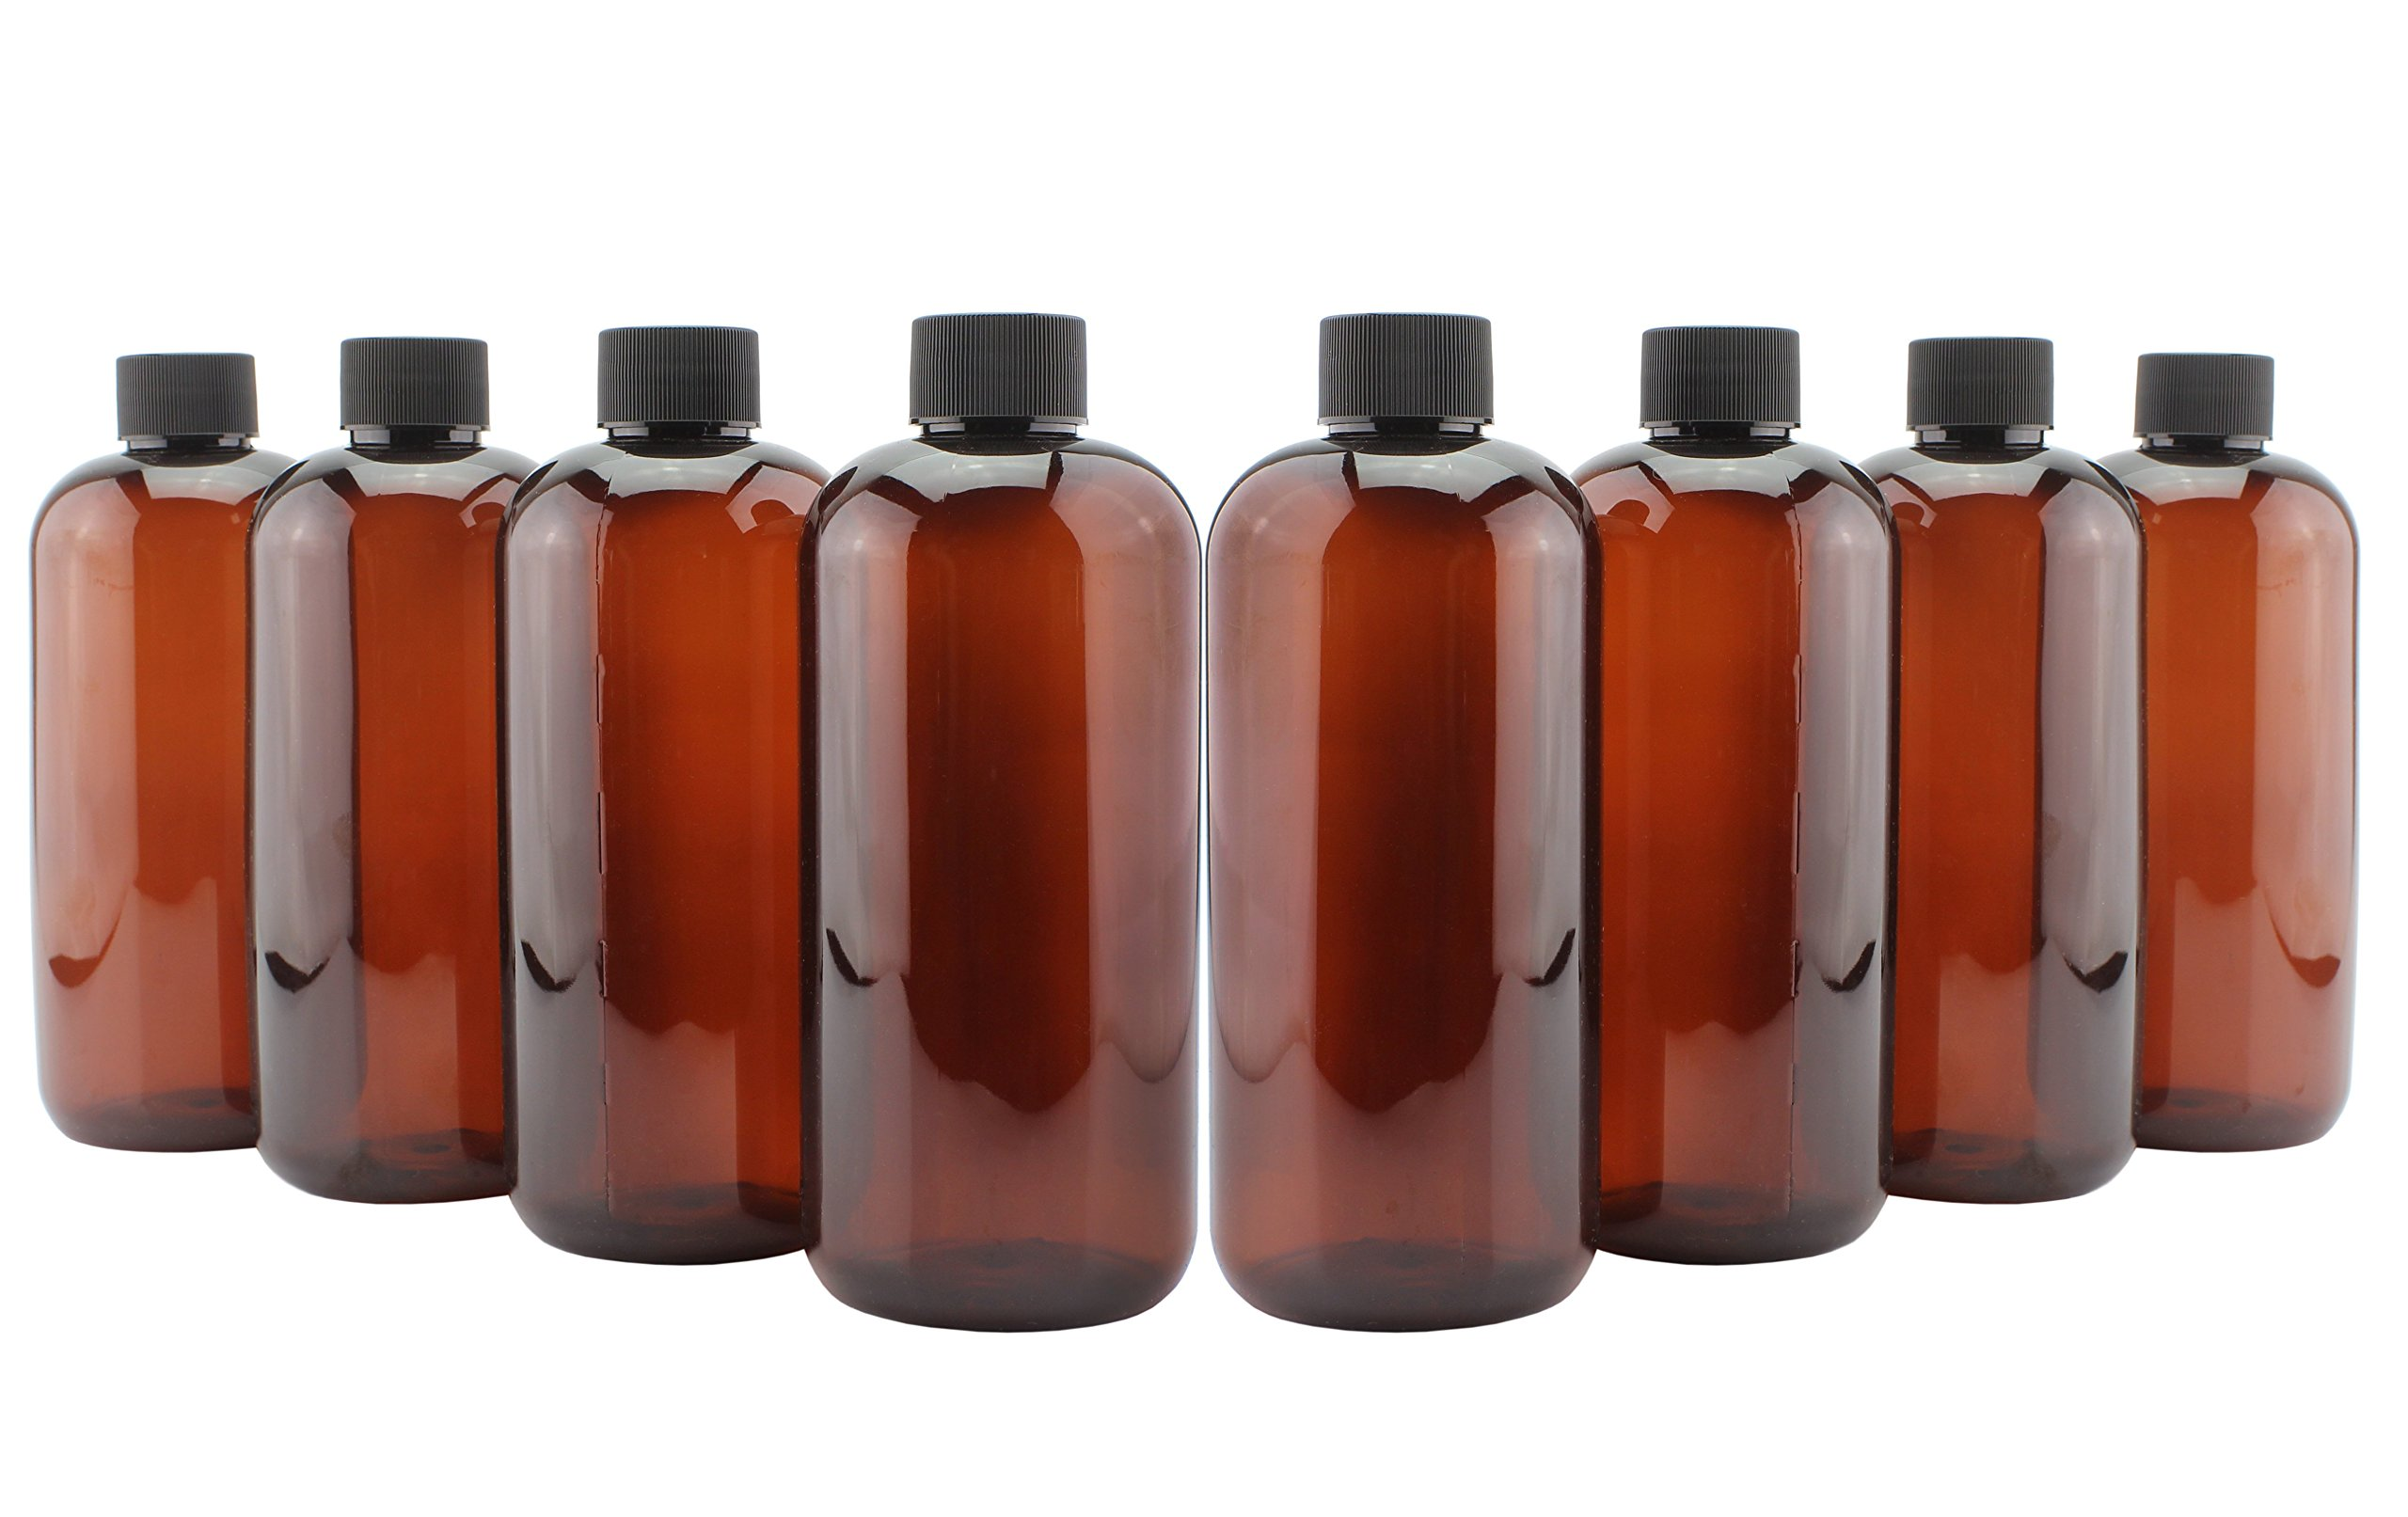 16-Ounce Plastic Amber Bottles (8-Pack); with Phenolic Caps for Kombucha, Cold Brew, Iced Tea, Other Beverages